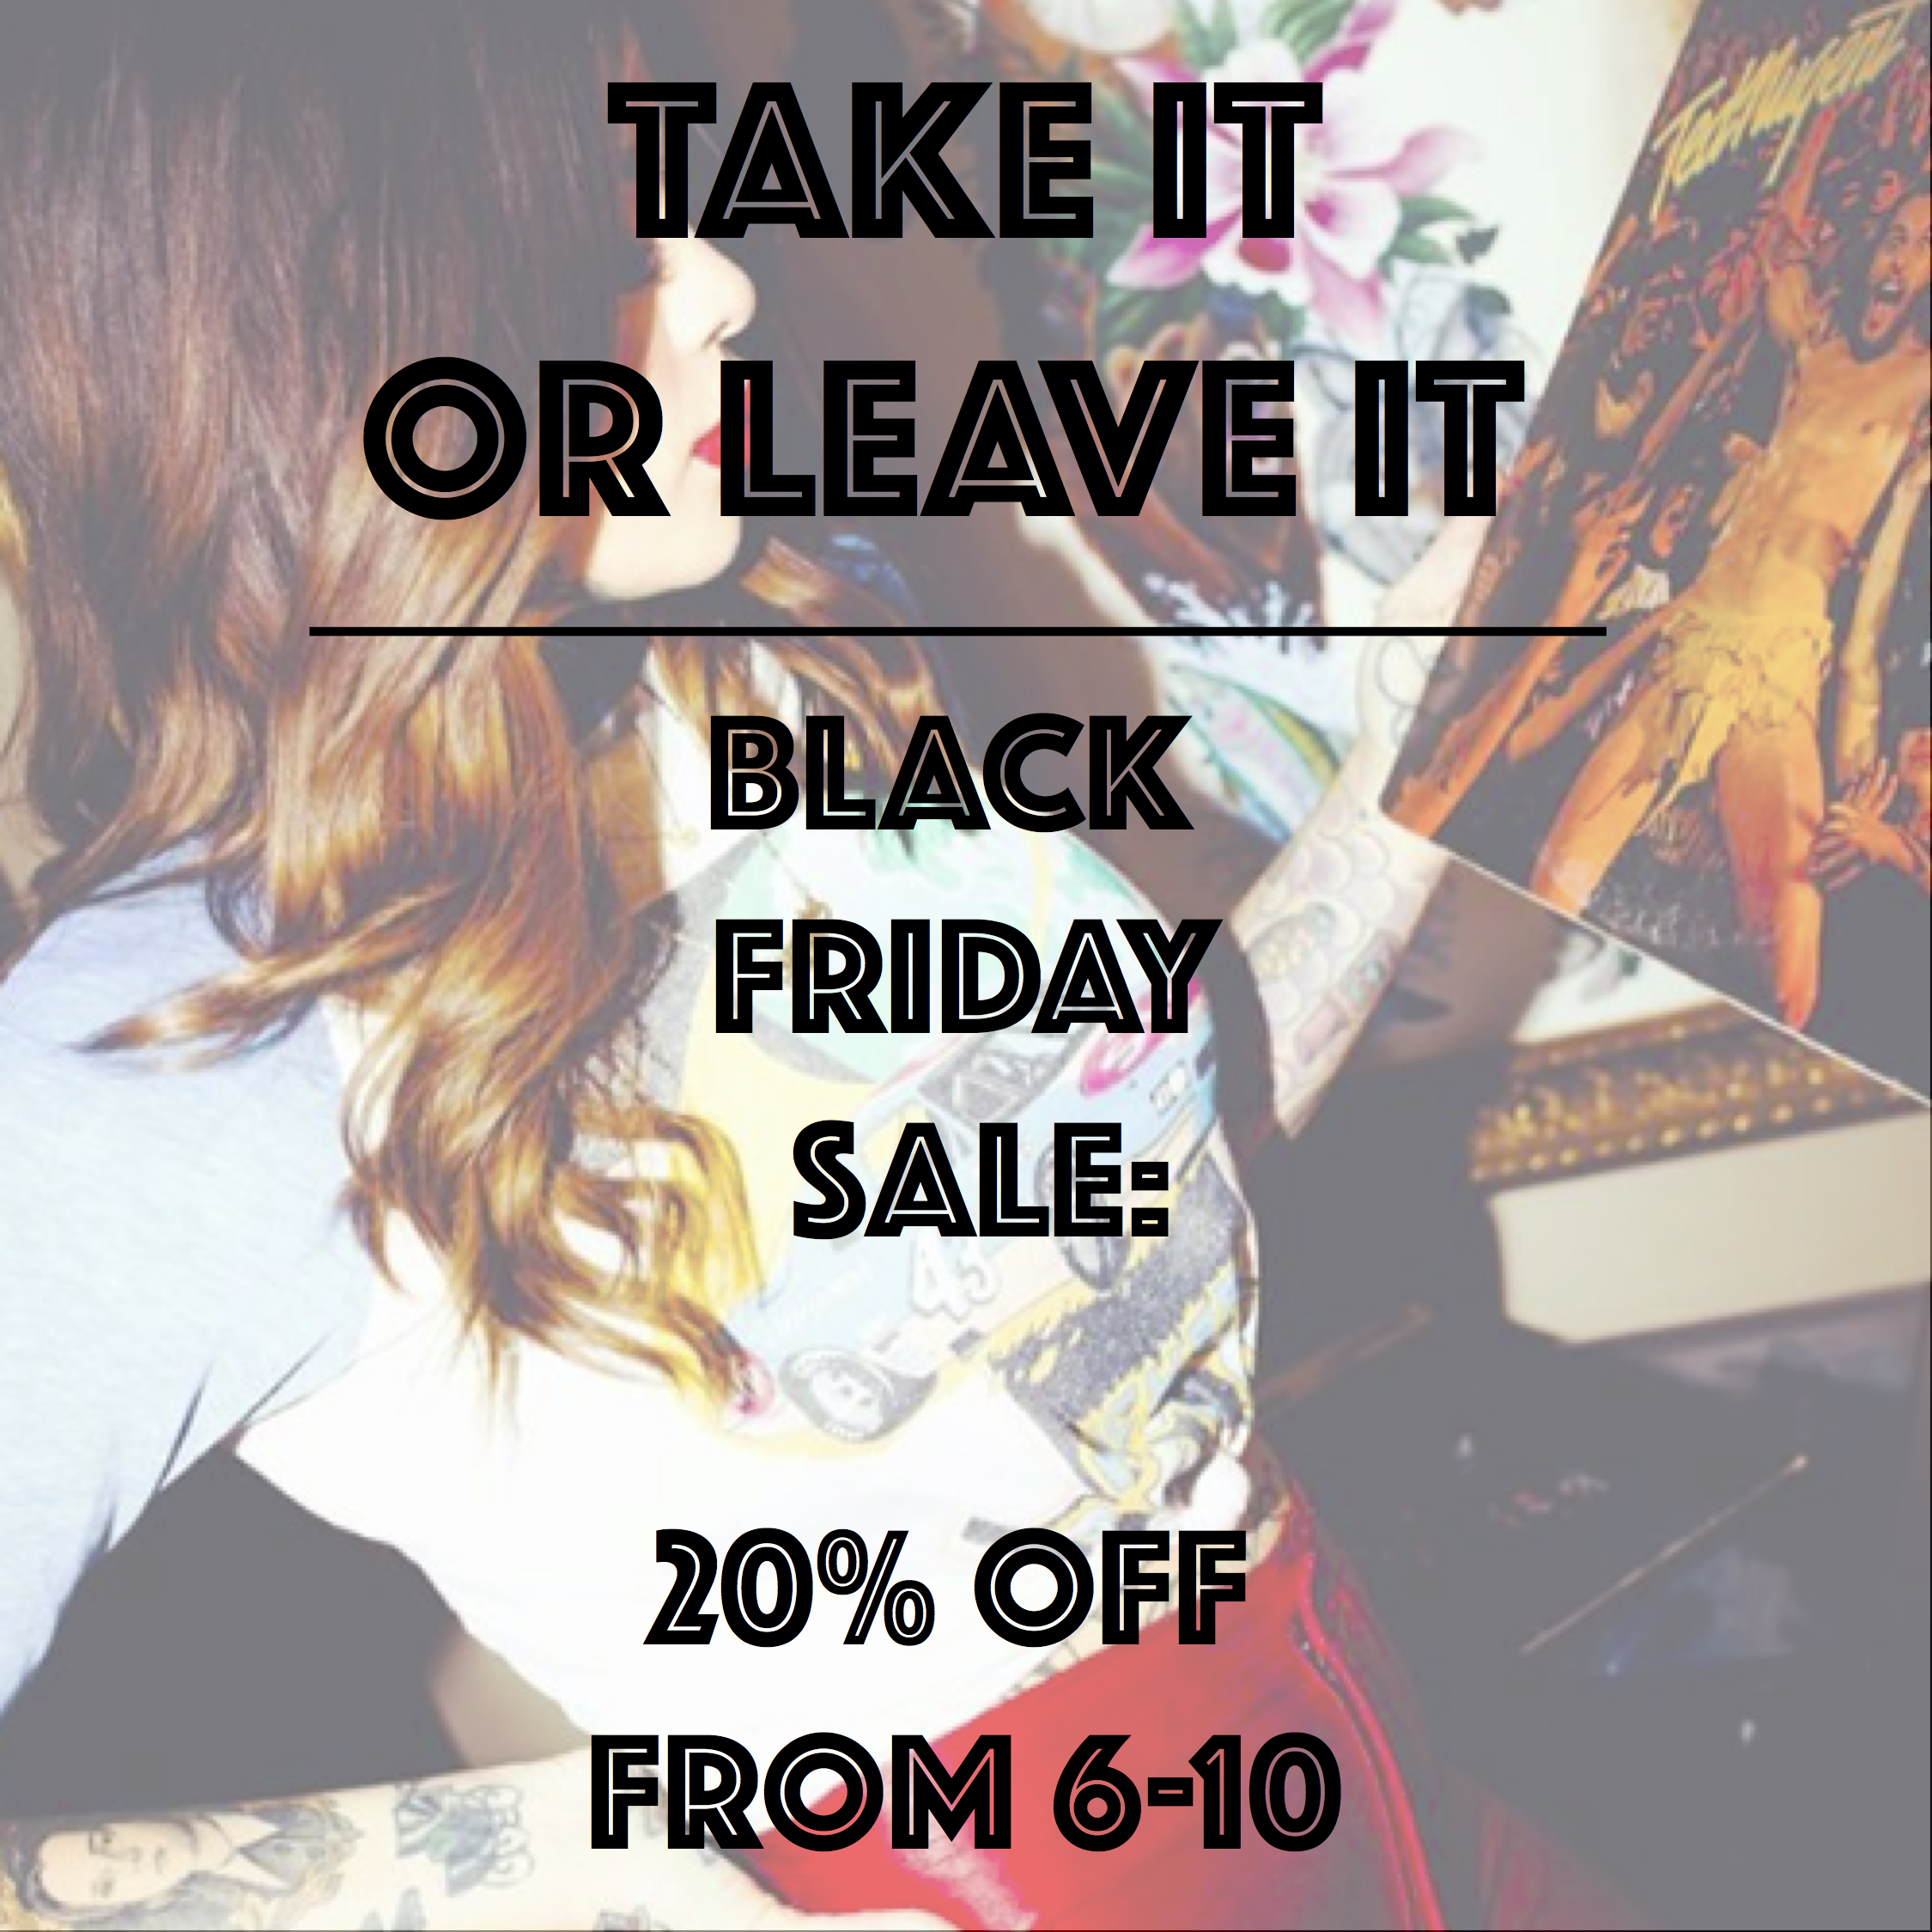 Take it or leave it - Black Friday